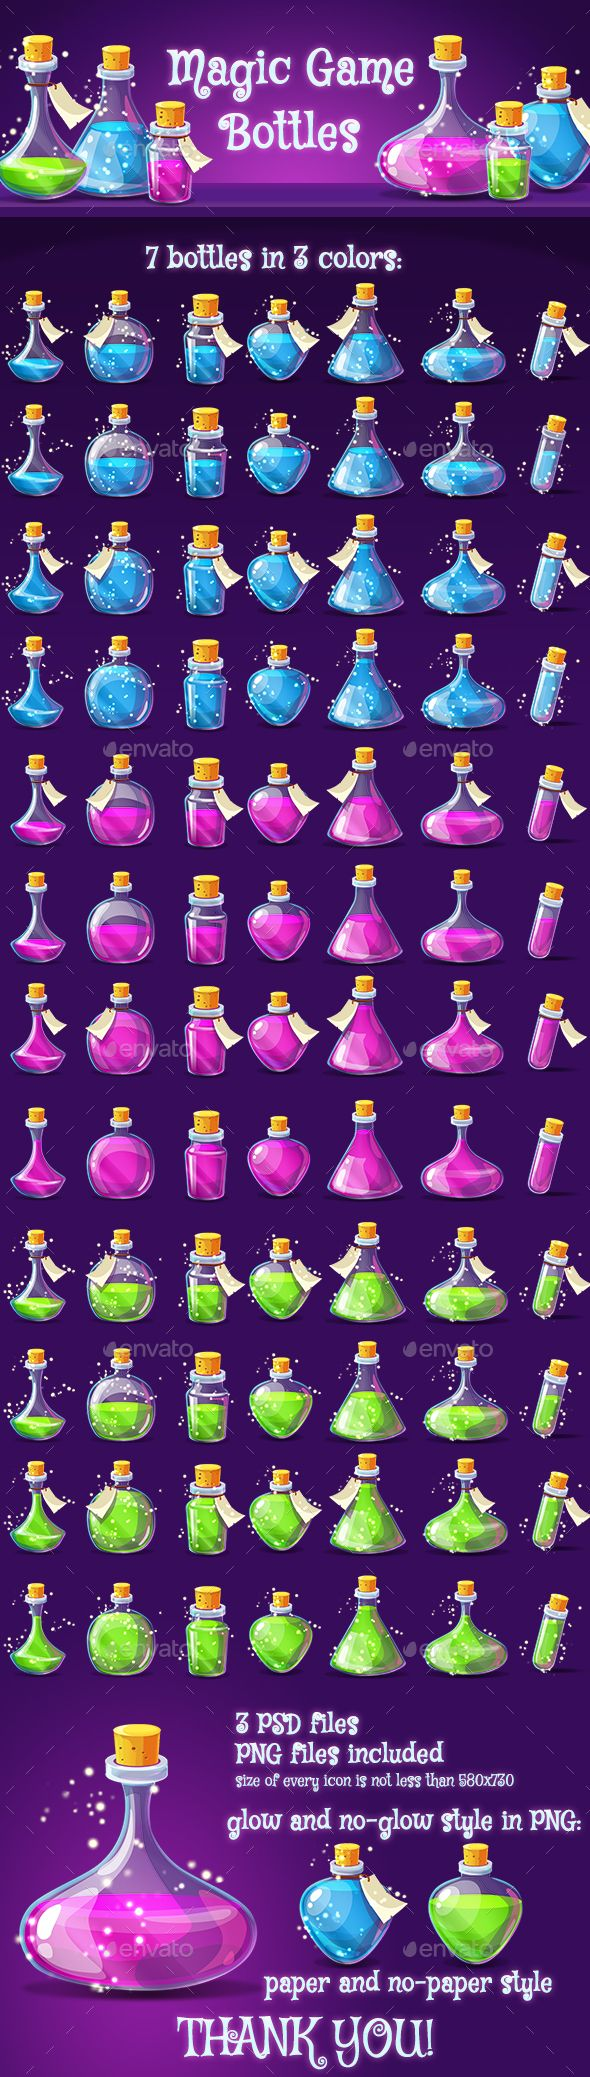 Magic Poison Game Icons Set Download here: https://graphicriver.net/item/magic-poison-game-icons-set/15714446?ref=KlitVogli